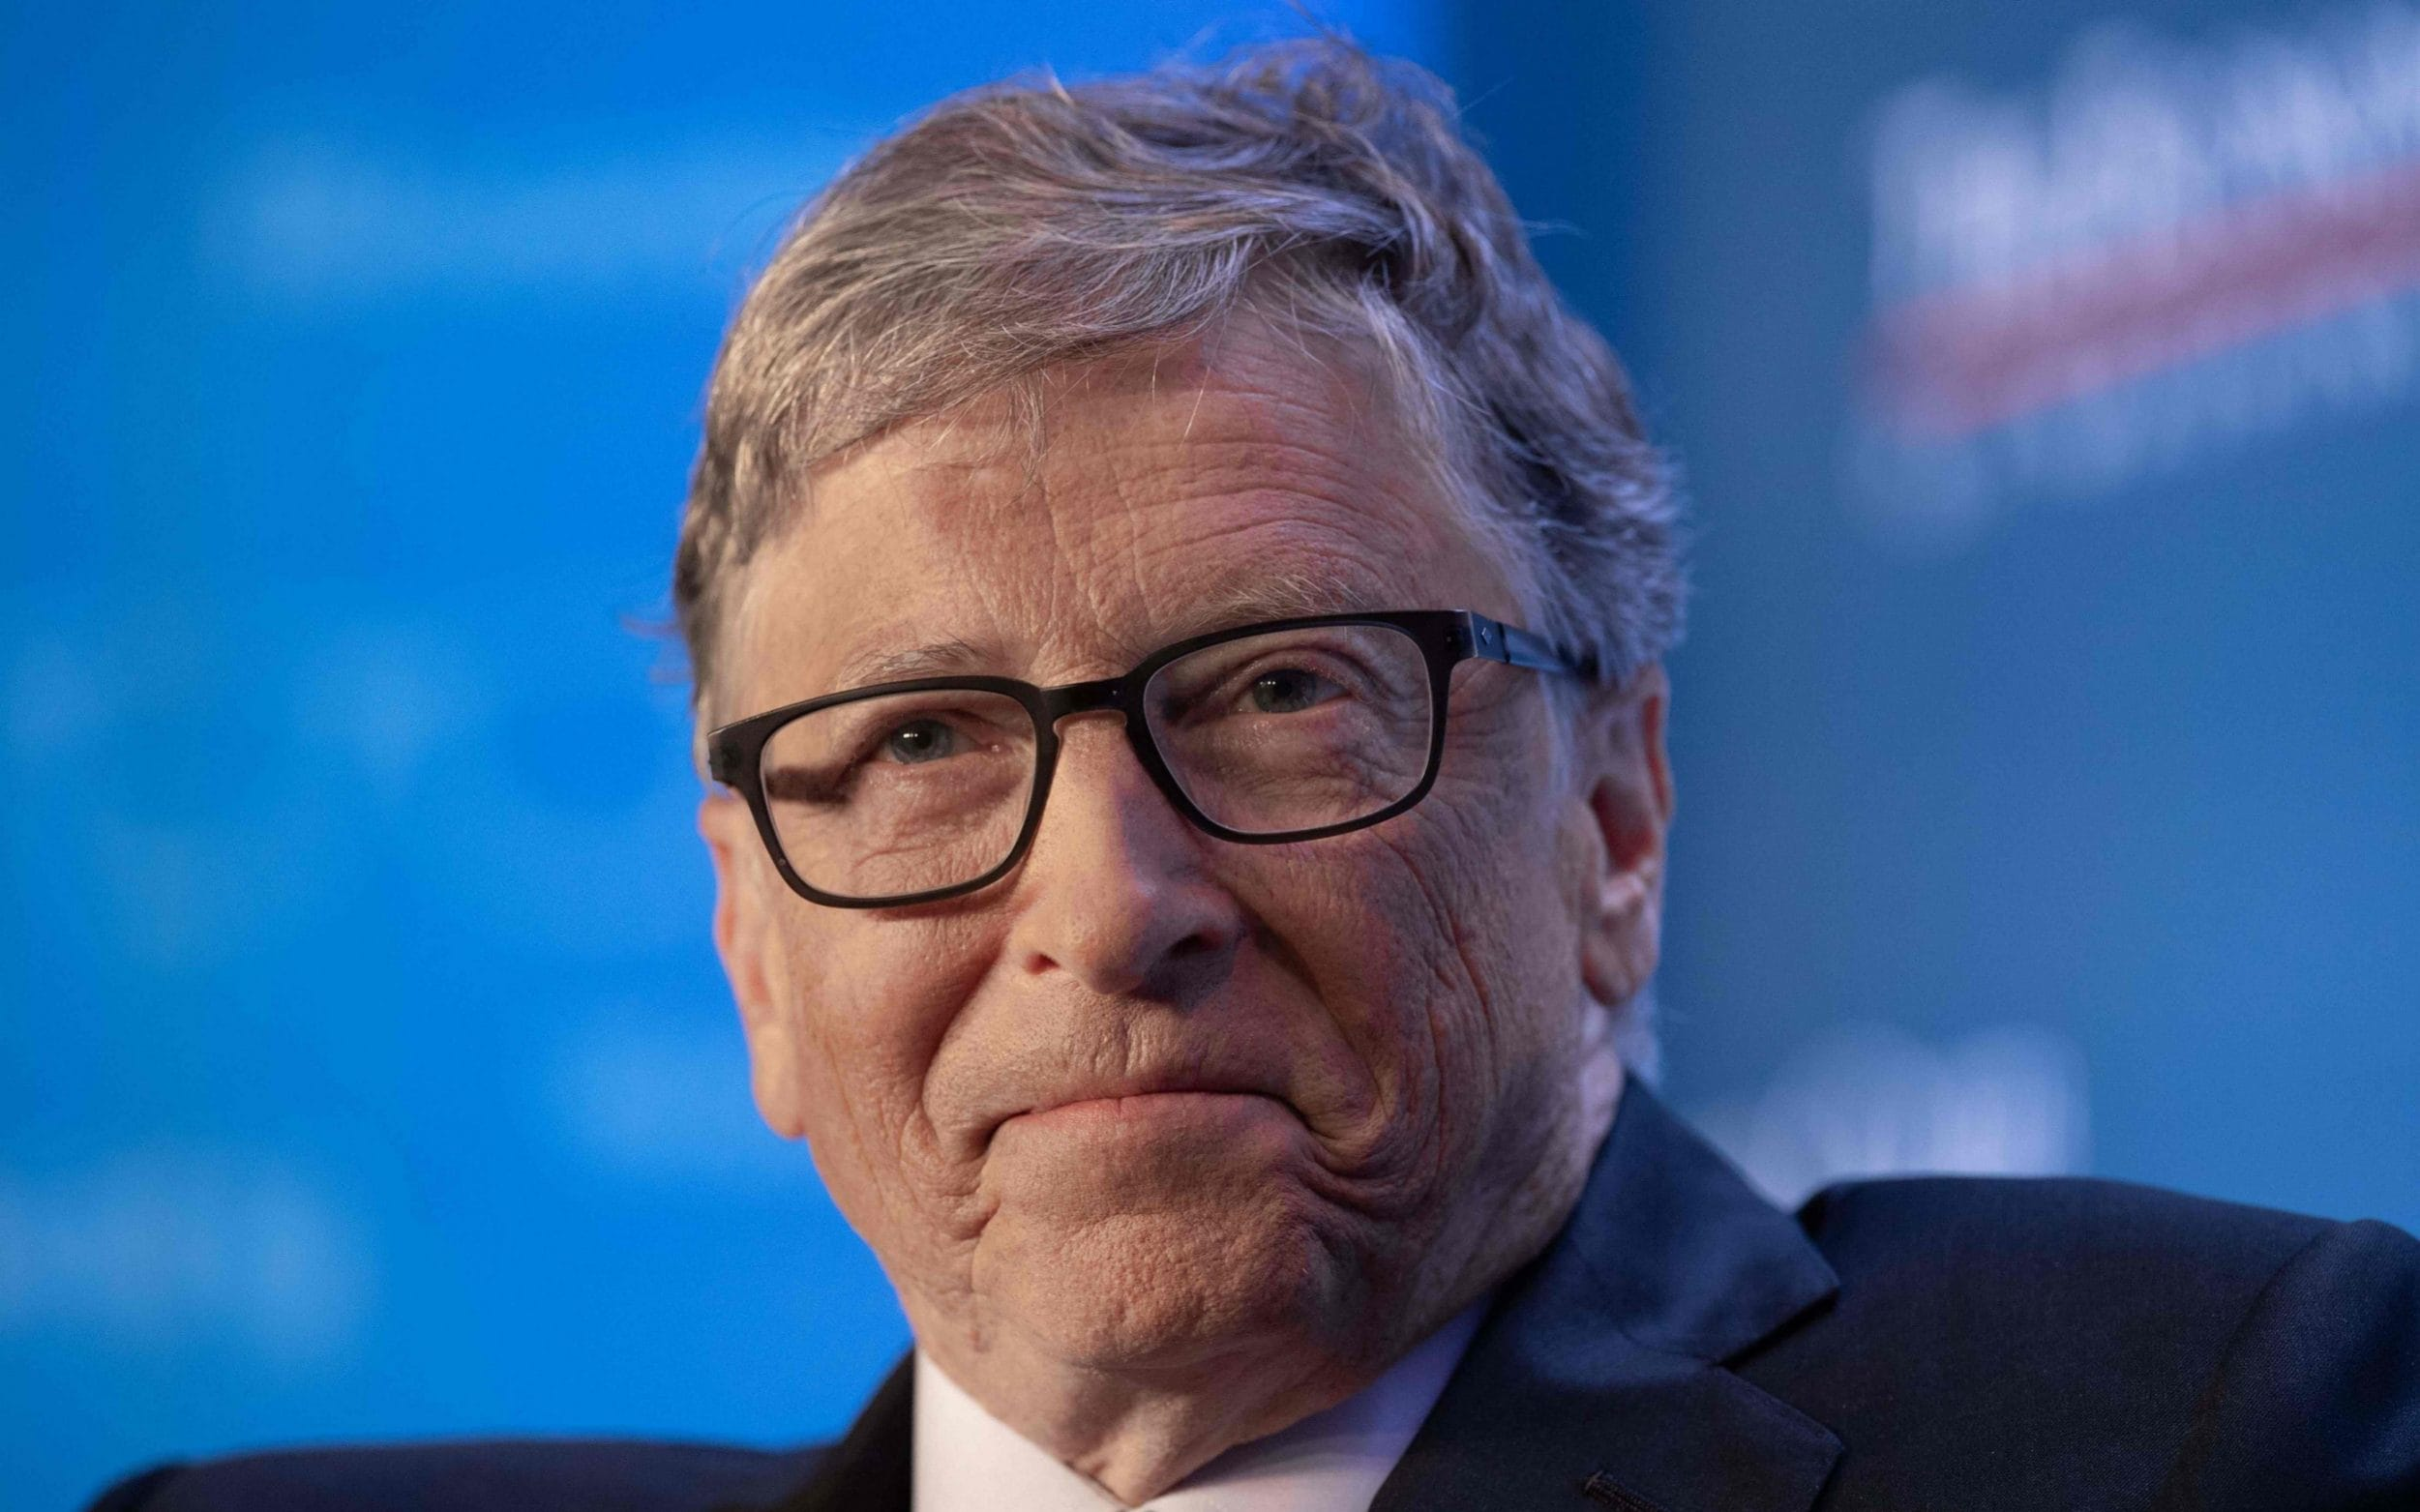 Bill Gates says he regrets meeting Epstein after his conviction and agreeing to donate $2m to MIT